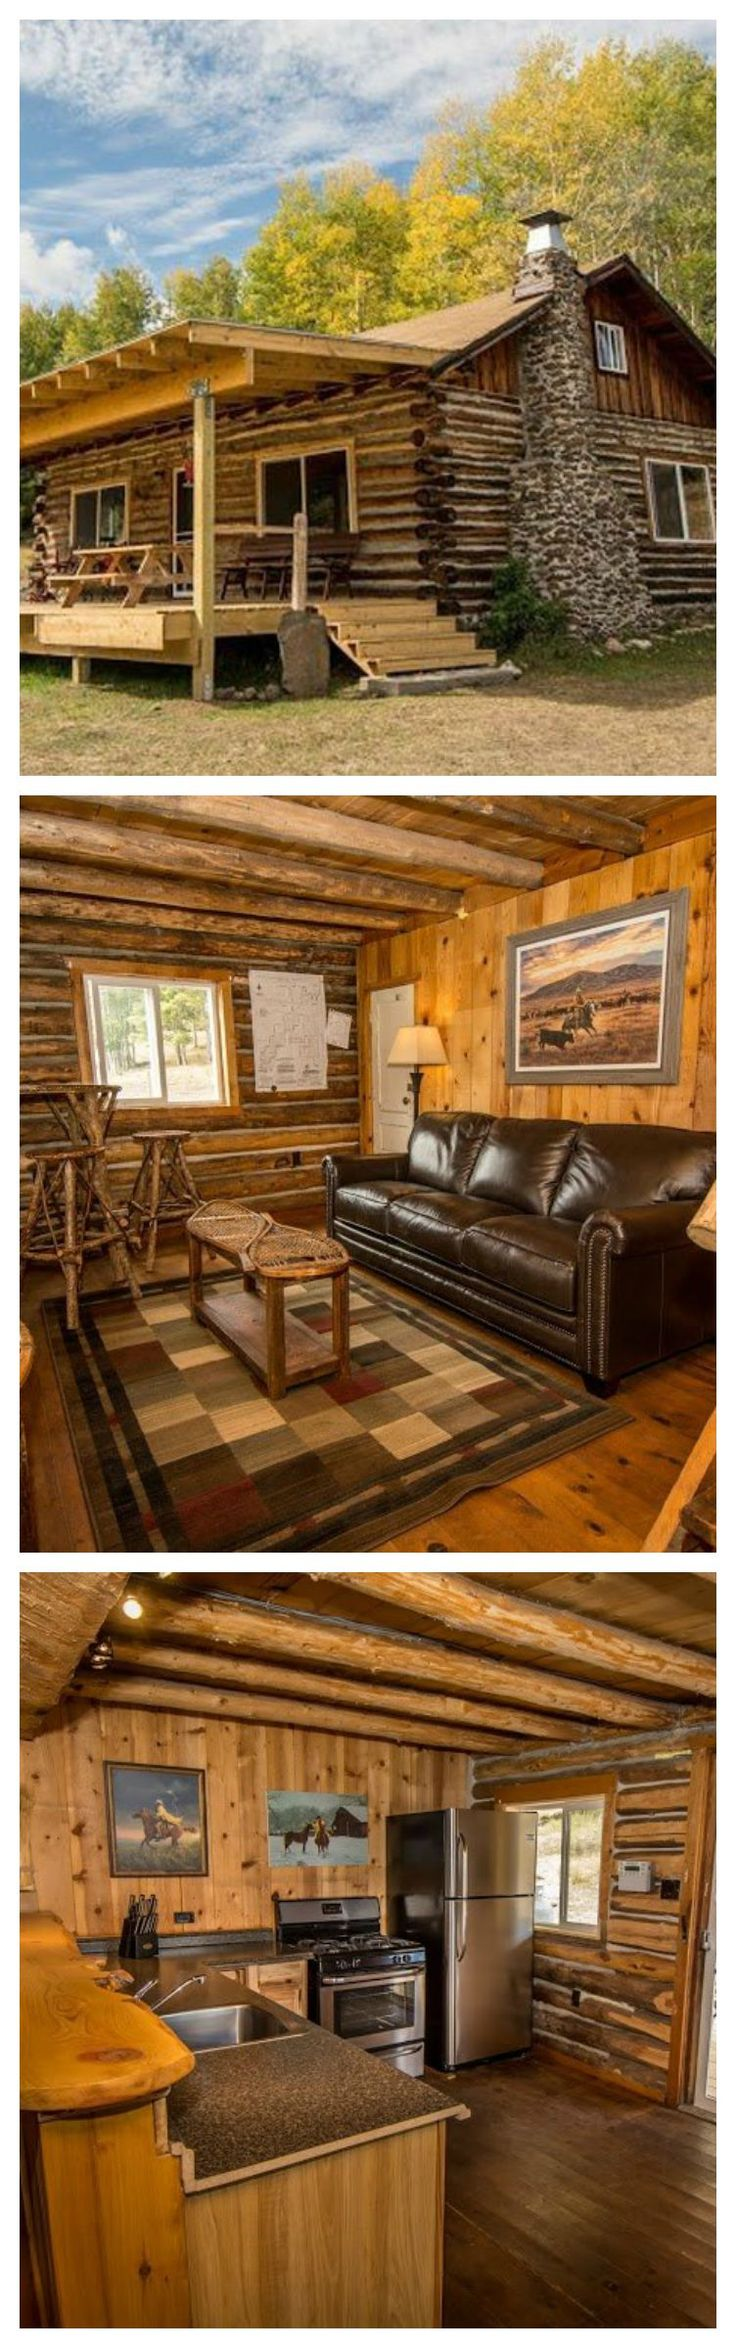 If you've been searching for a woodsy hideaway that will awake your inner cowgirl, then your hunt stops here. This historic homestead has a gorgeous fully restored log cabin, sitting on 160 acres in Northern New Mexico.